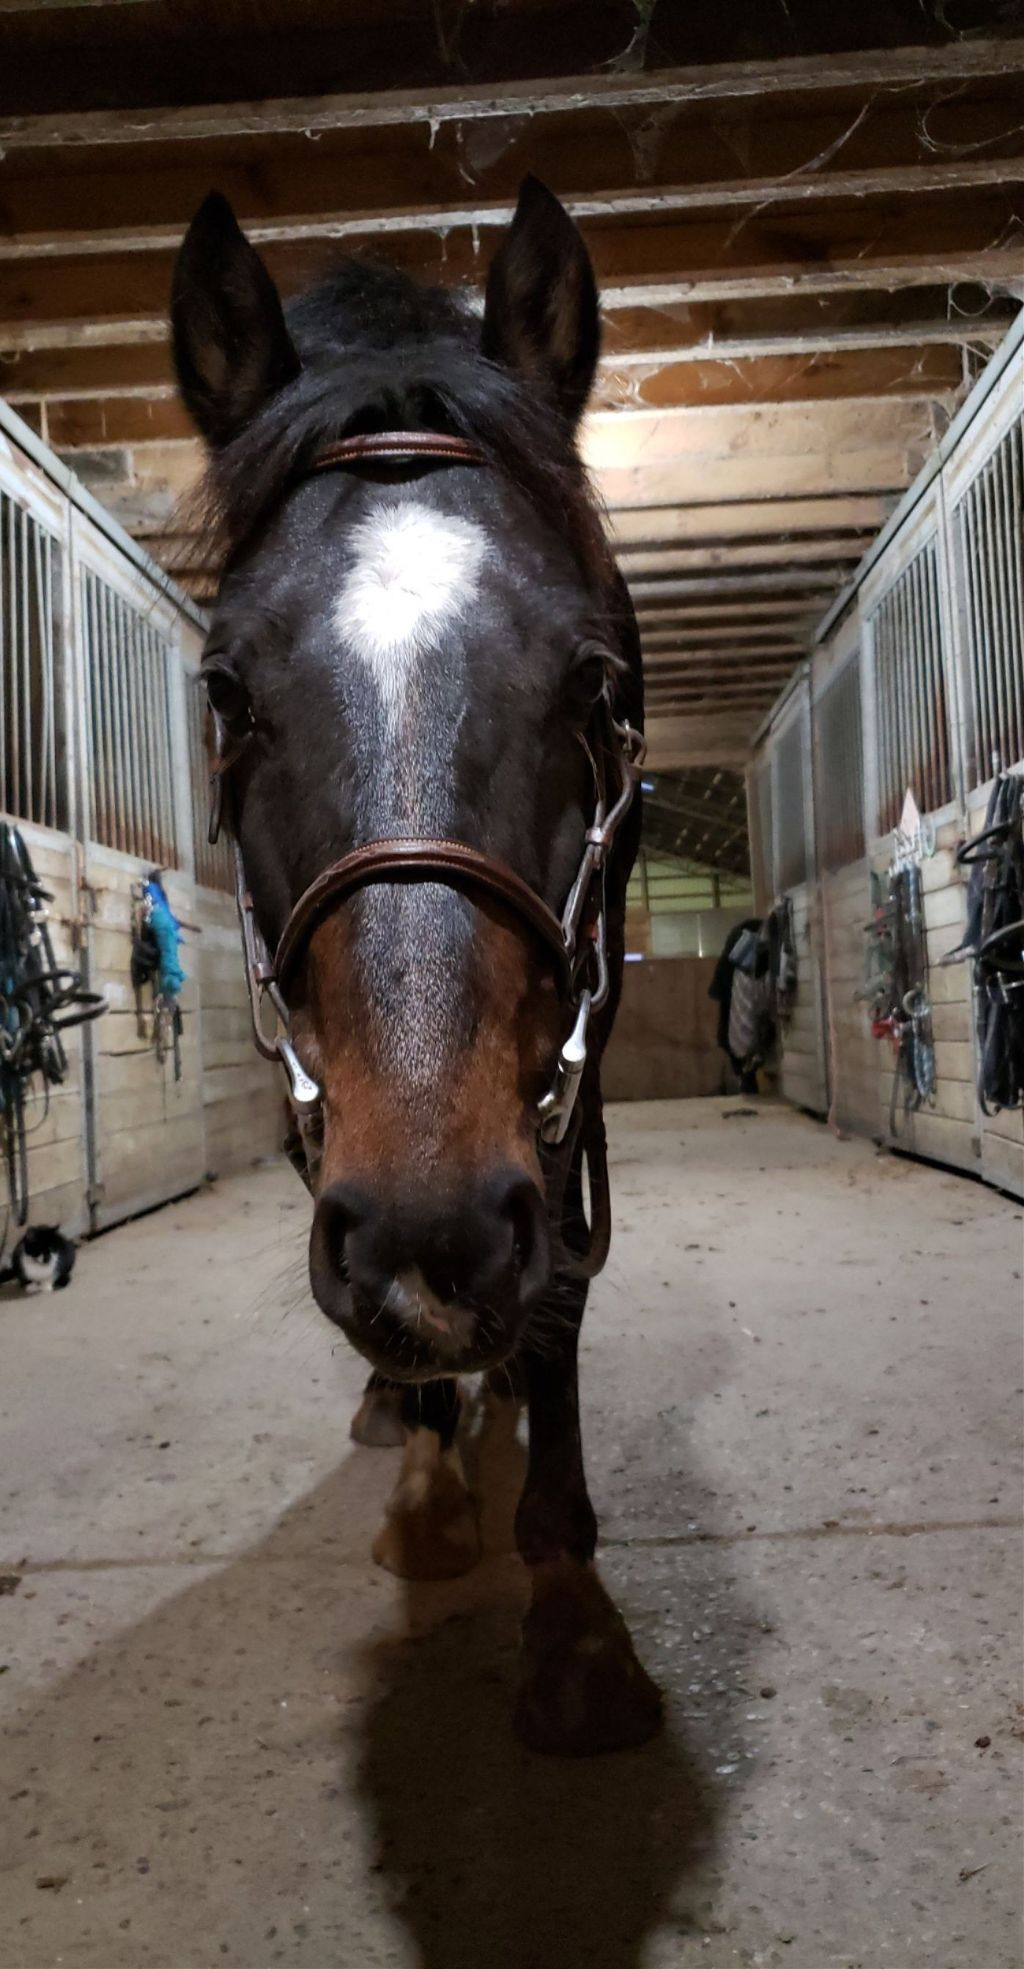 Gibby last night. We had our lesson bareback for no-stirrup November. Do you guys participate in no-stirrup November? #pony #gibson #horse #november